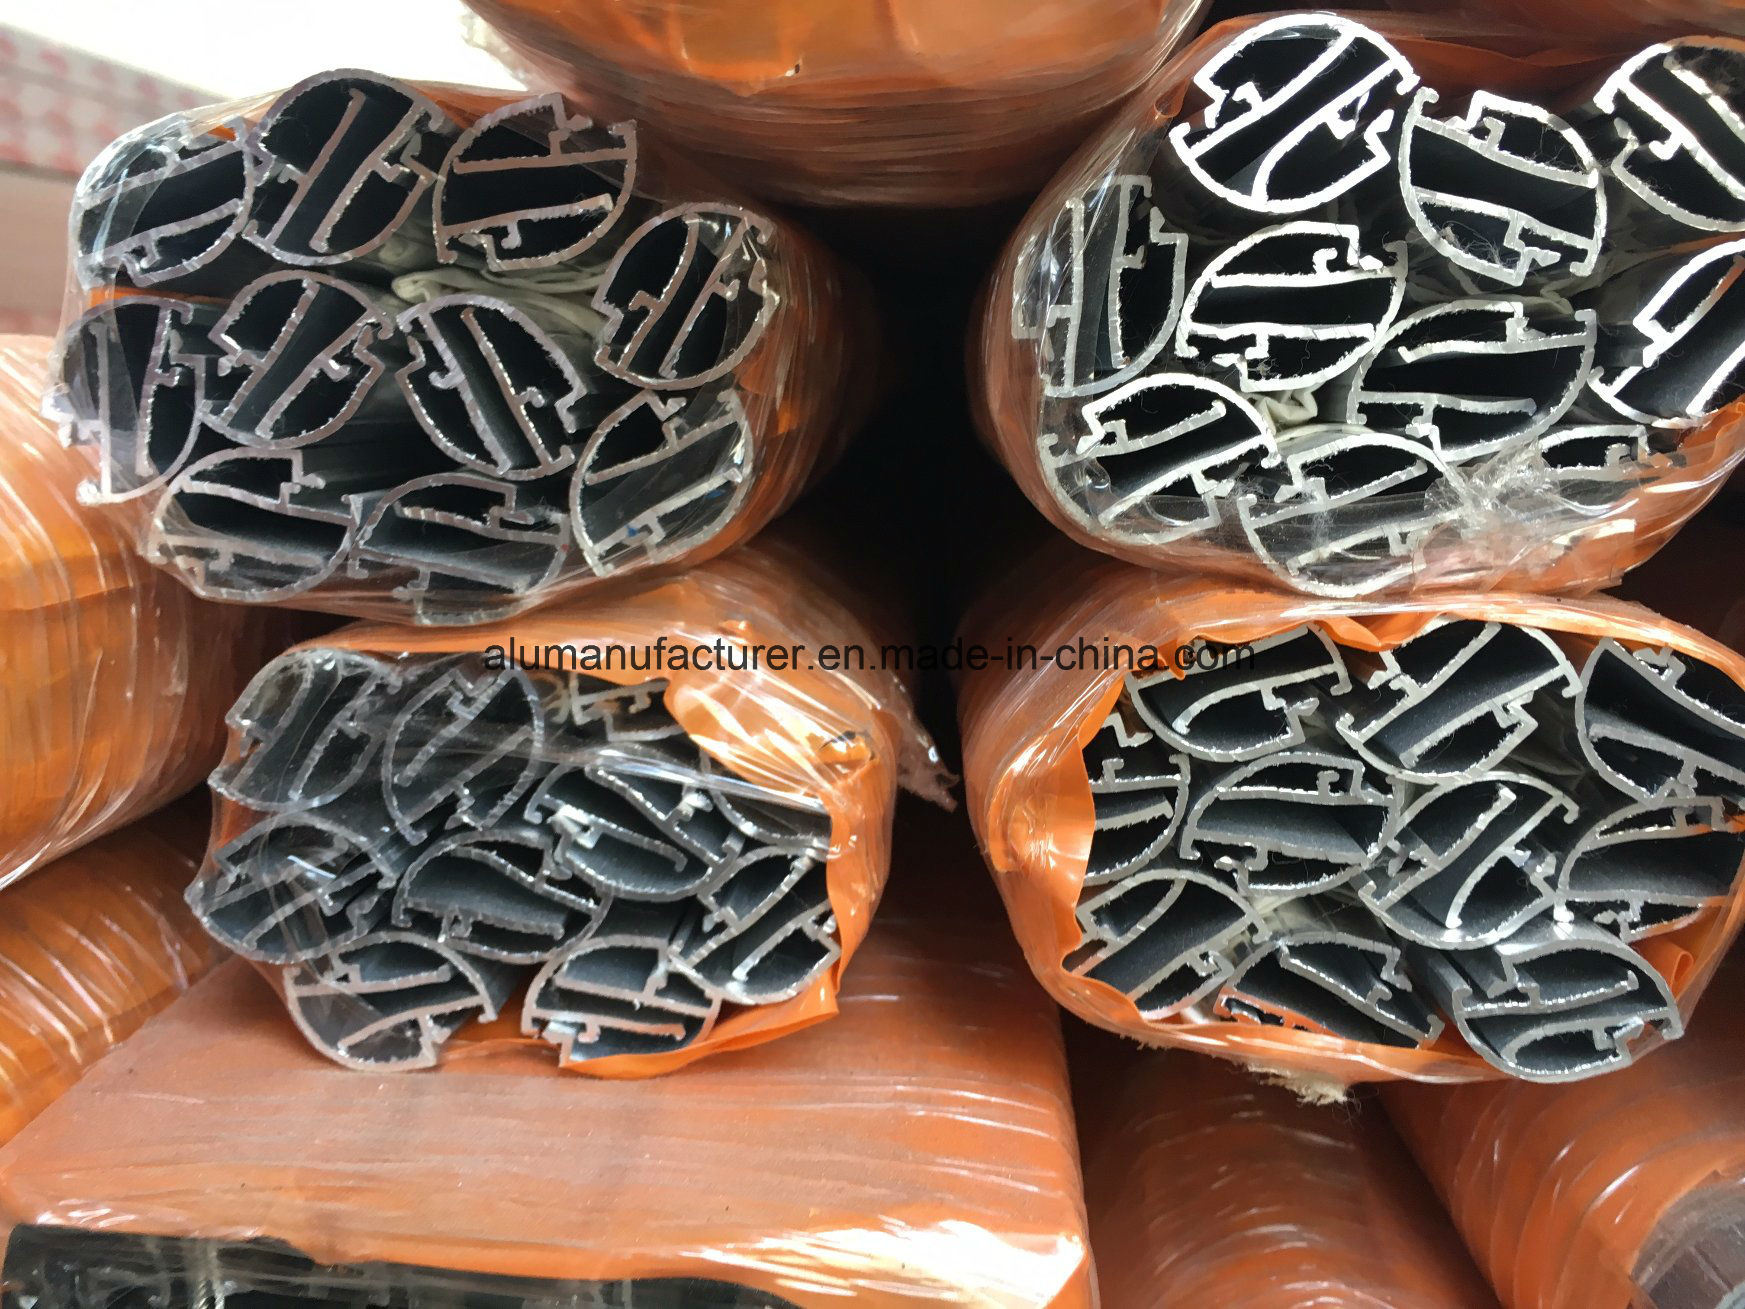 Iraq Glass Clip Aluminium Alloy Extrusion Profile for Door and Window (02 Series) pictures & photos